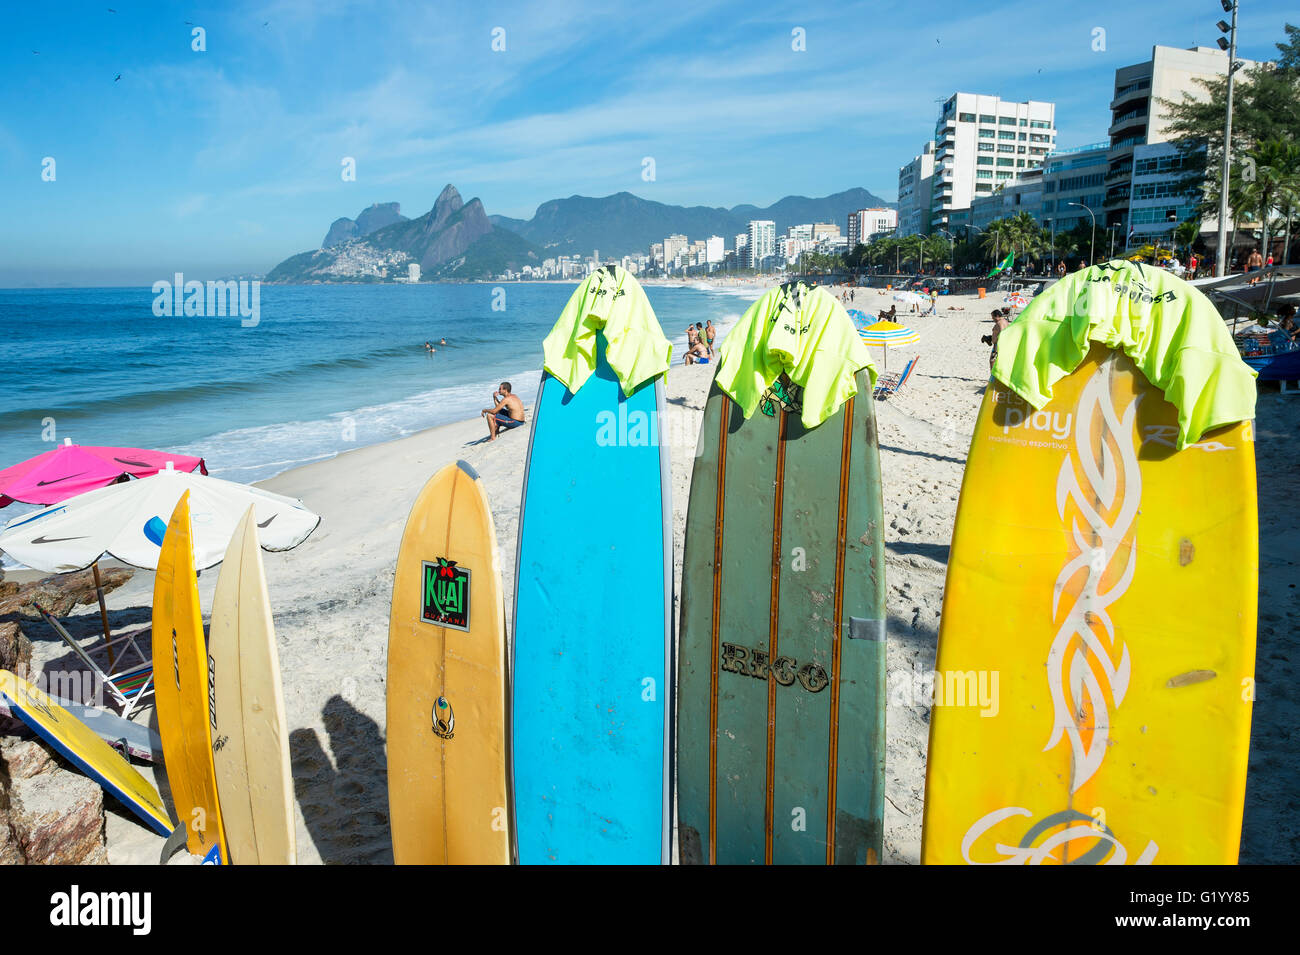 RIO DE JANEIRO - MARCH 30, 2016: Colorful surfboards stand lined up on the beach at Arpoador, a popular surf destination. - Stock Image